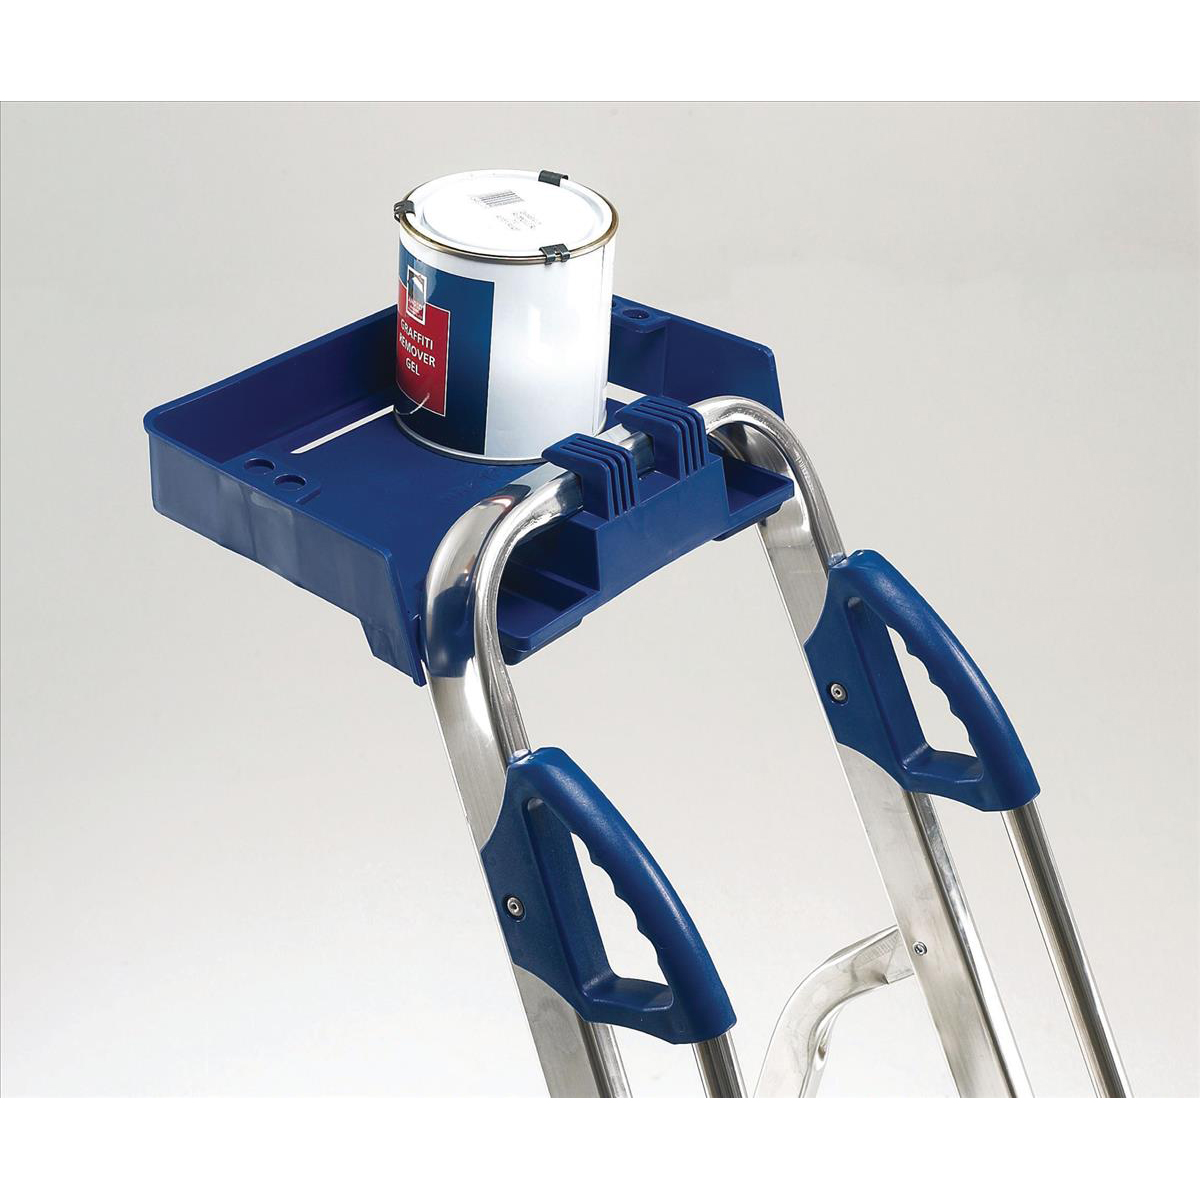 Tradesman Platform Step Ladder 7 Steps Capacity 150kg Silver/Blue